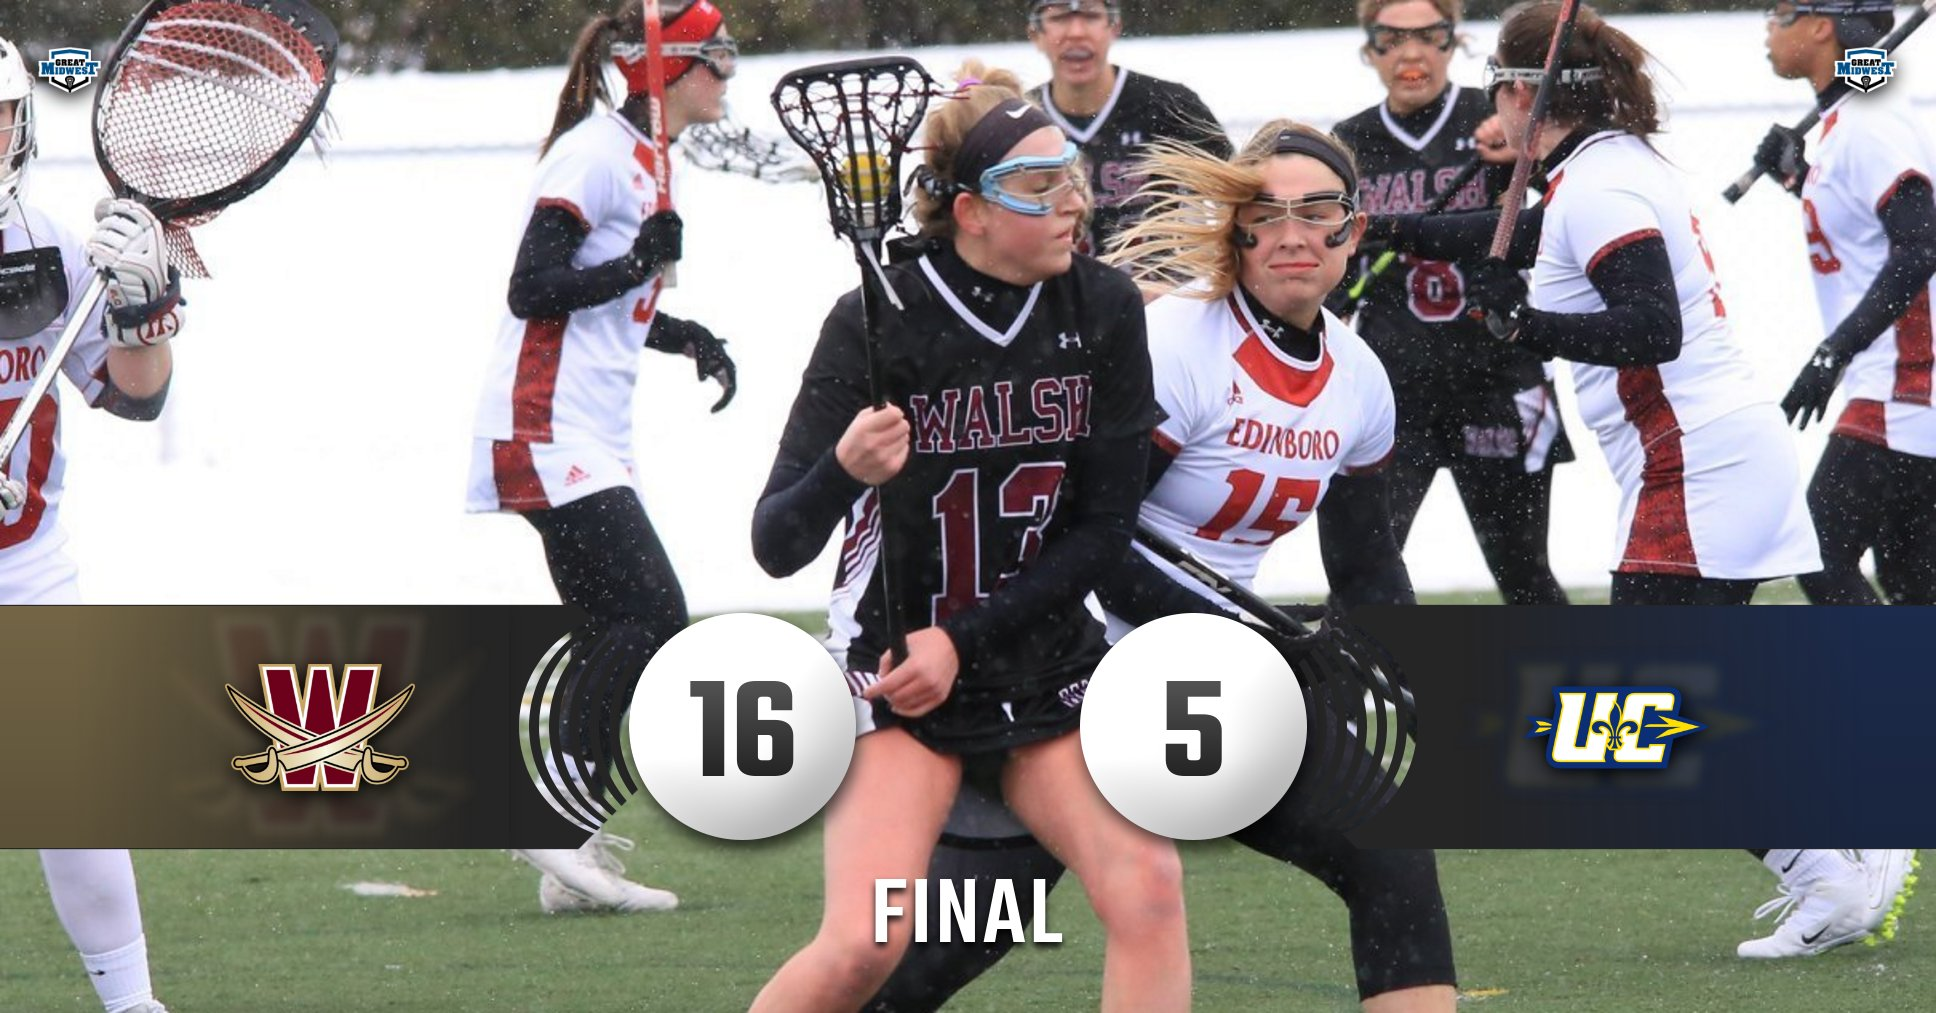 Cavaliers Win Second Straight, 16-5